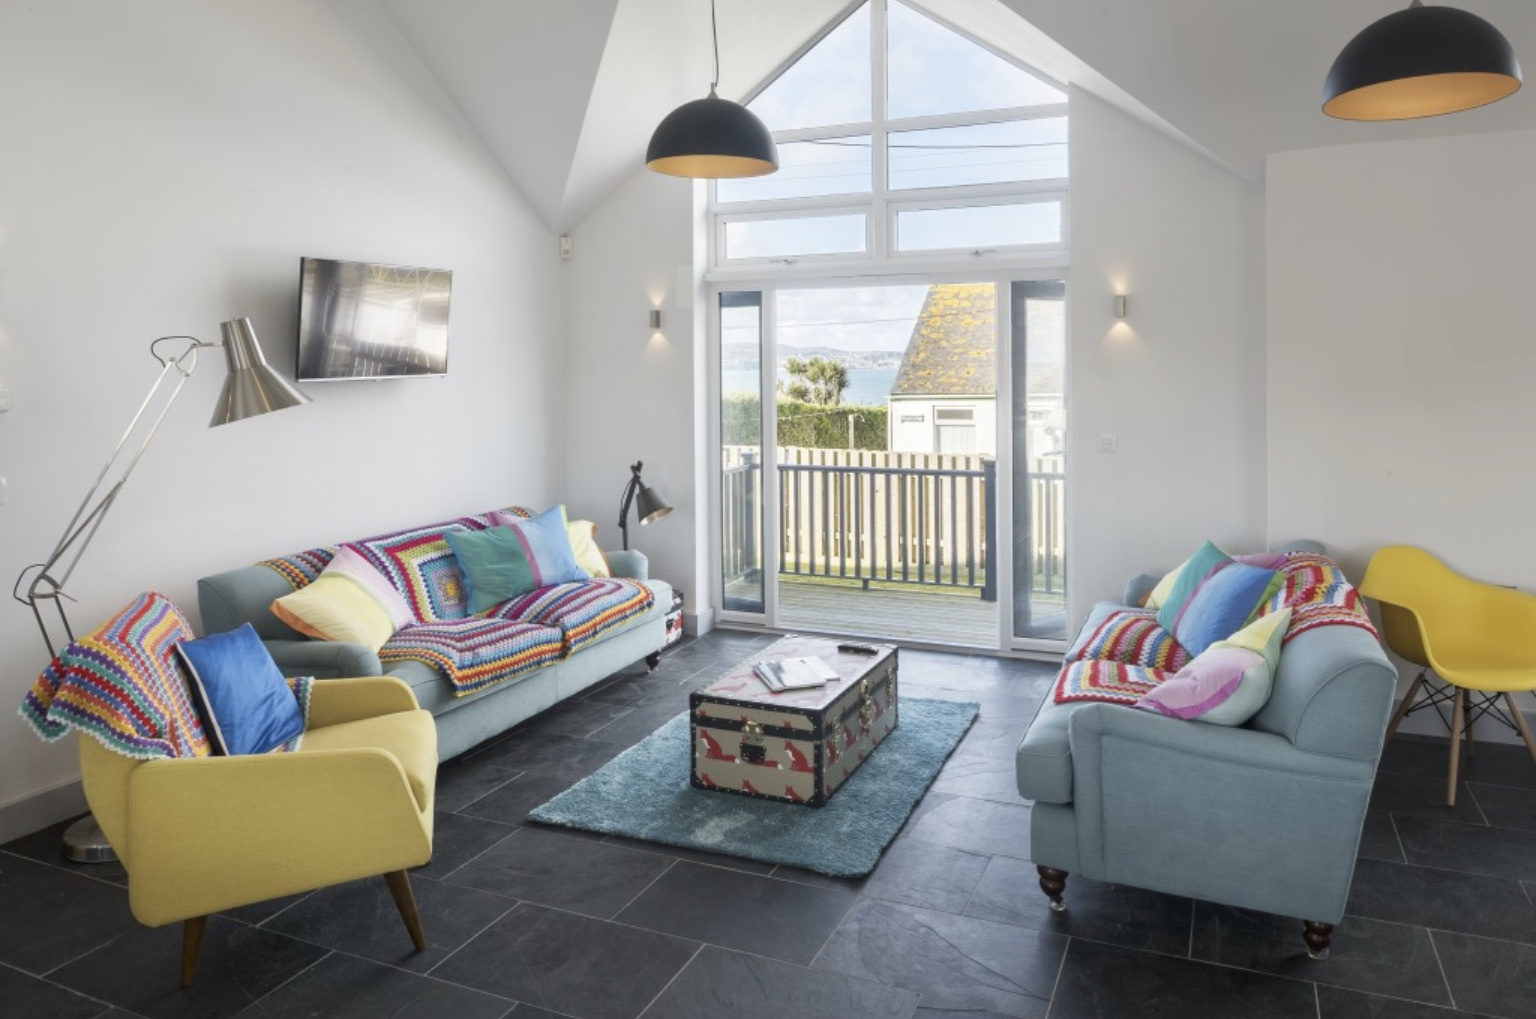 Living area at Surf Six holiday home in Cornwall with sofas and chairs seated around an eclectic coloured trunk and four hanging black and gold pendants